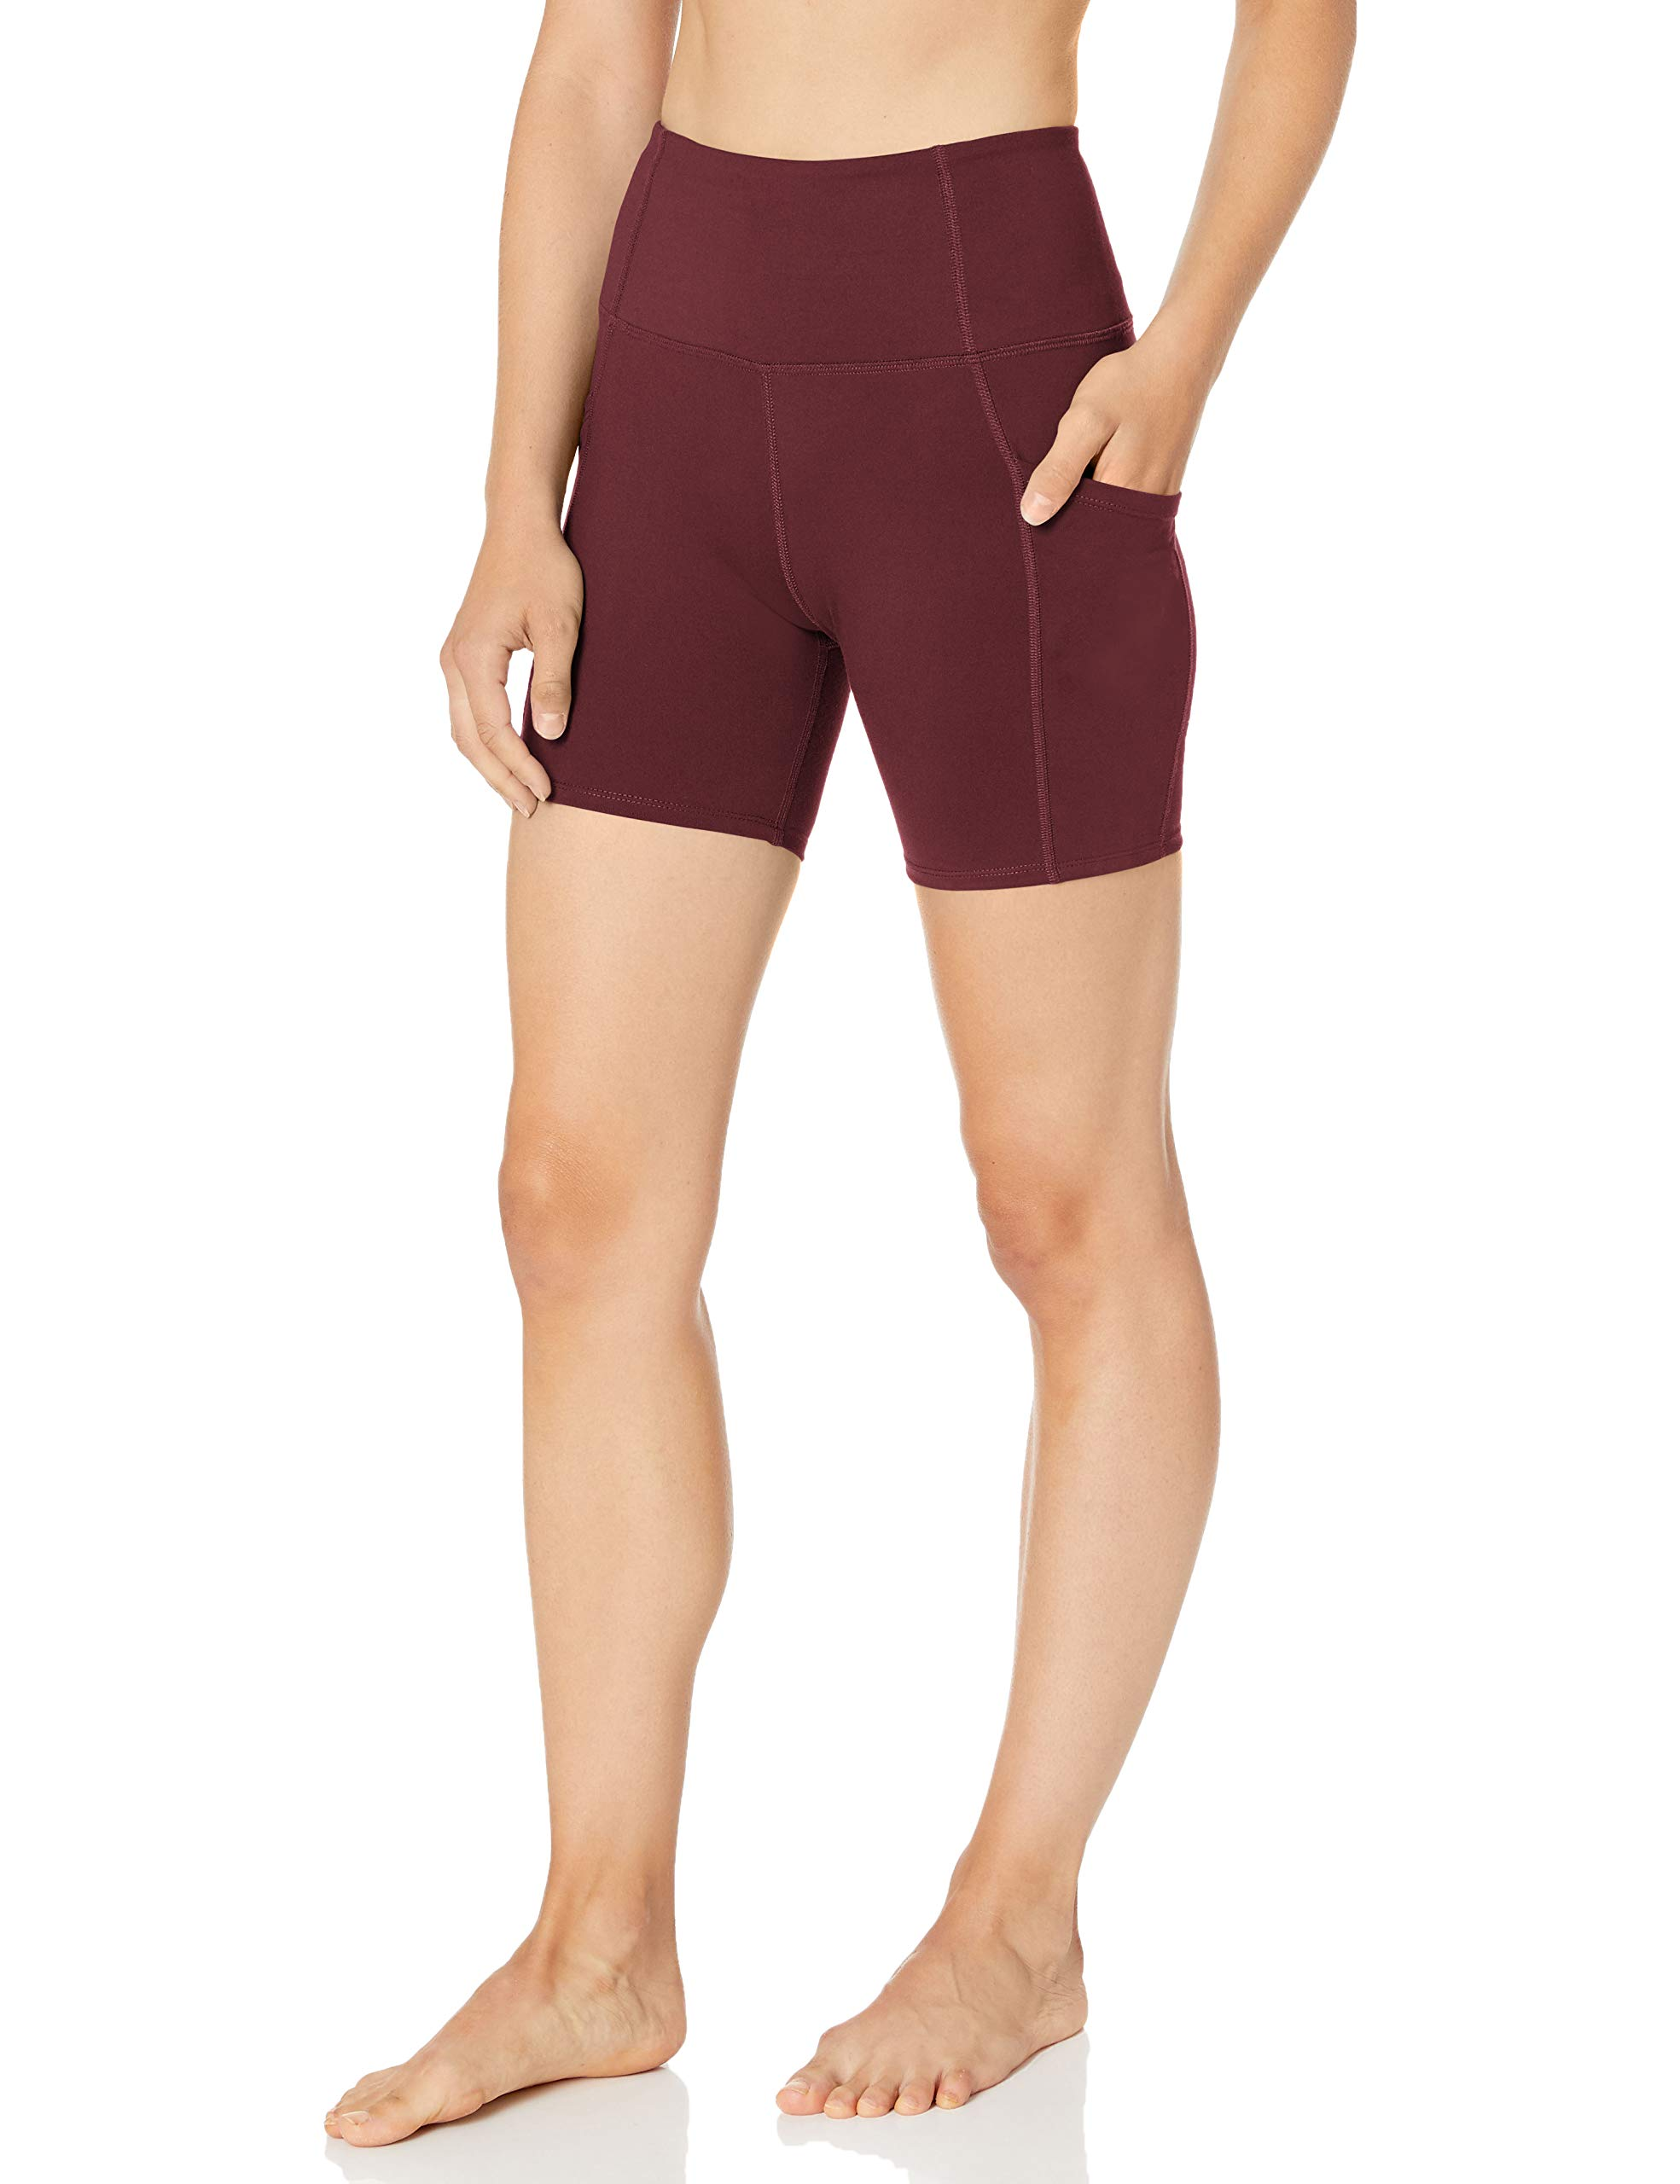 """Amazon Brand - Core 10 Women's (XS-3X) All Day Comfort High Waist Yoga Short with Side Pockets - 5"""""""